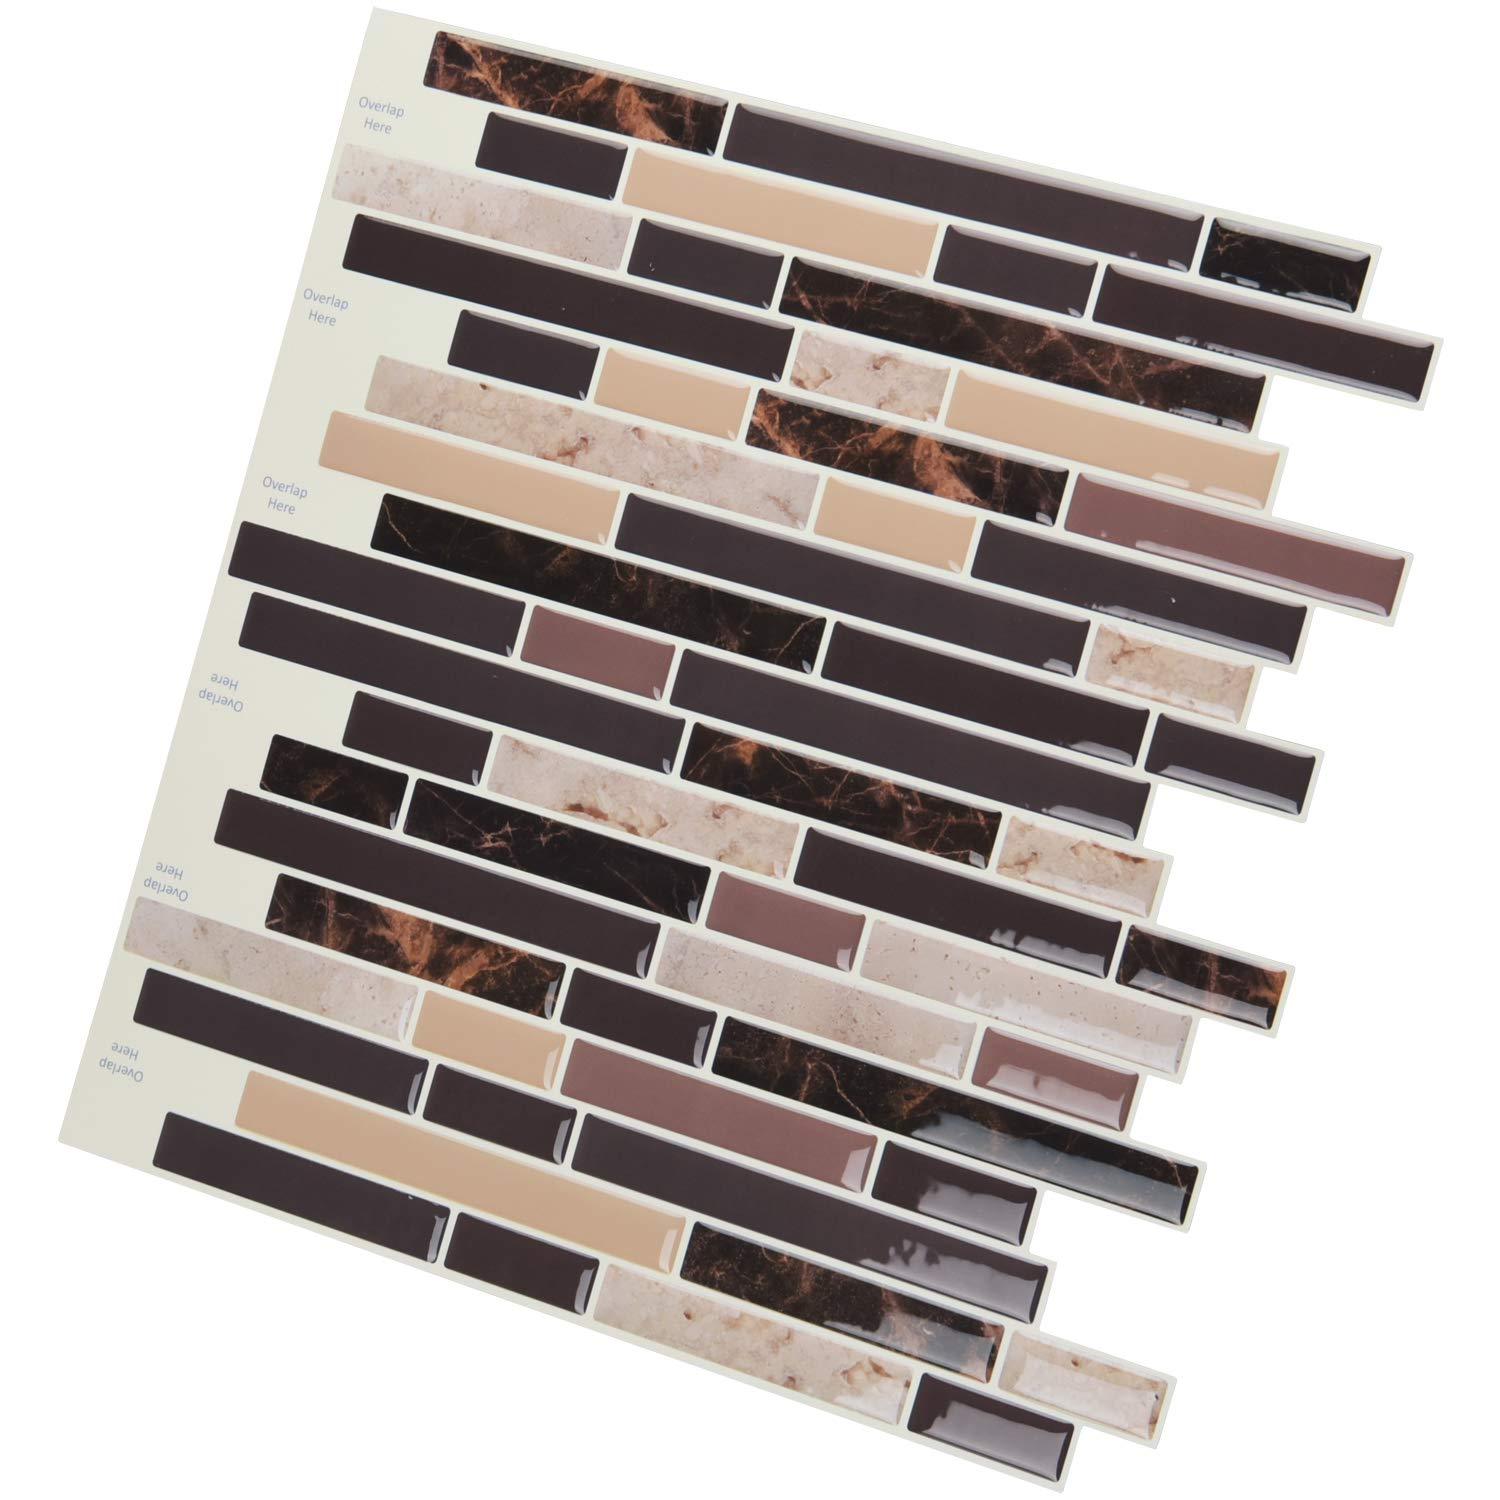 Art3d Self Adhesive Wall Tile Peel and Stick Backsplash for Kitchen (10 Tiles) by Art3d (Image #4)